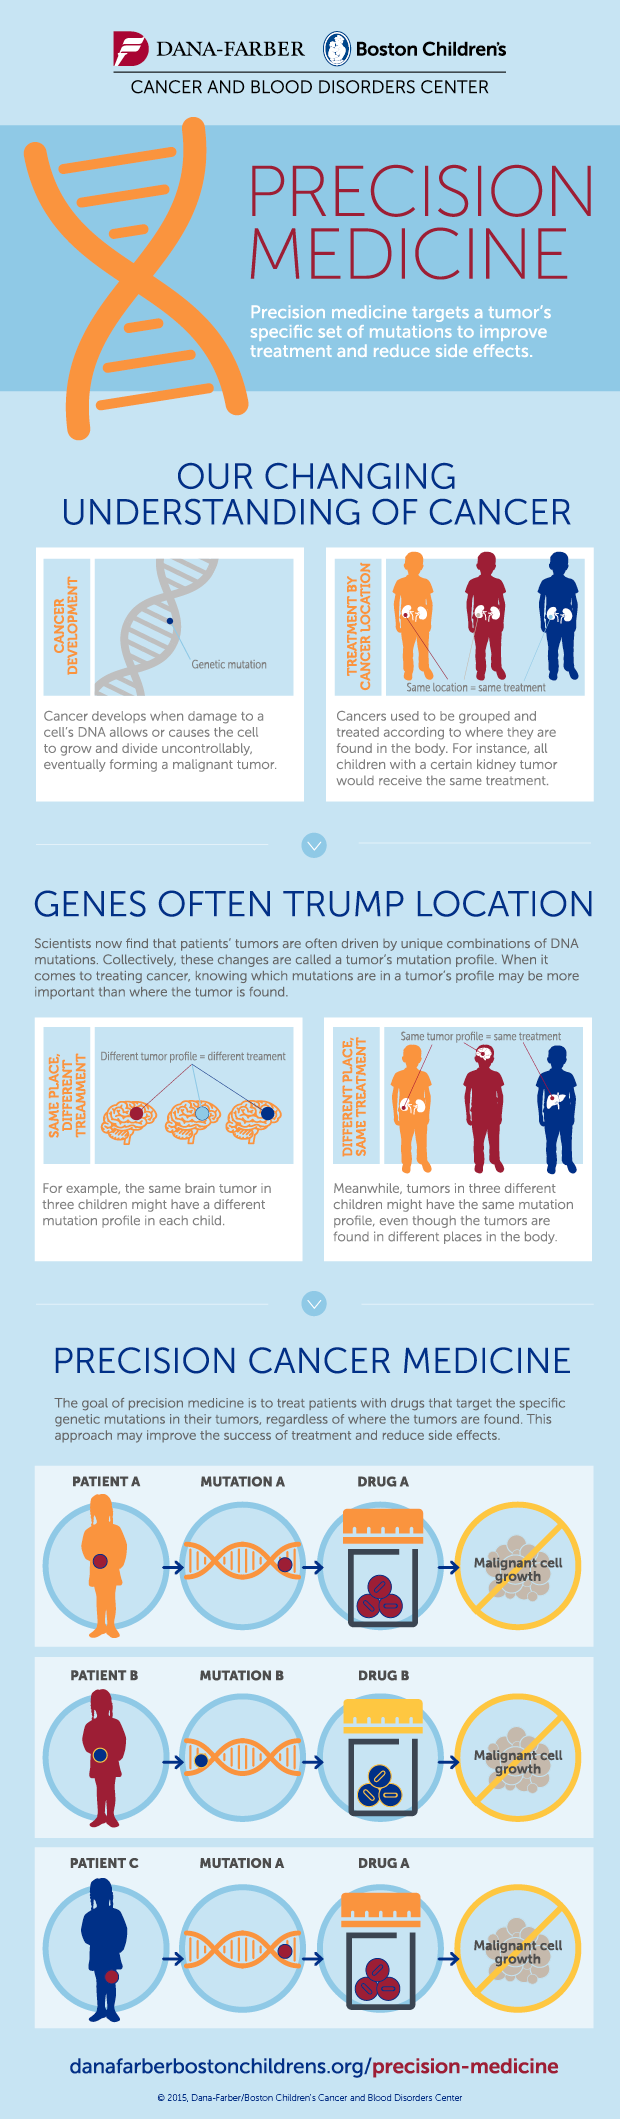 Precision Medicine Infographic.png